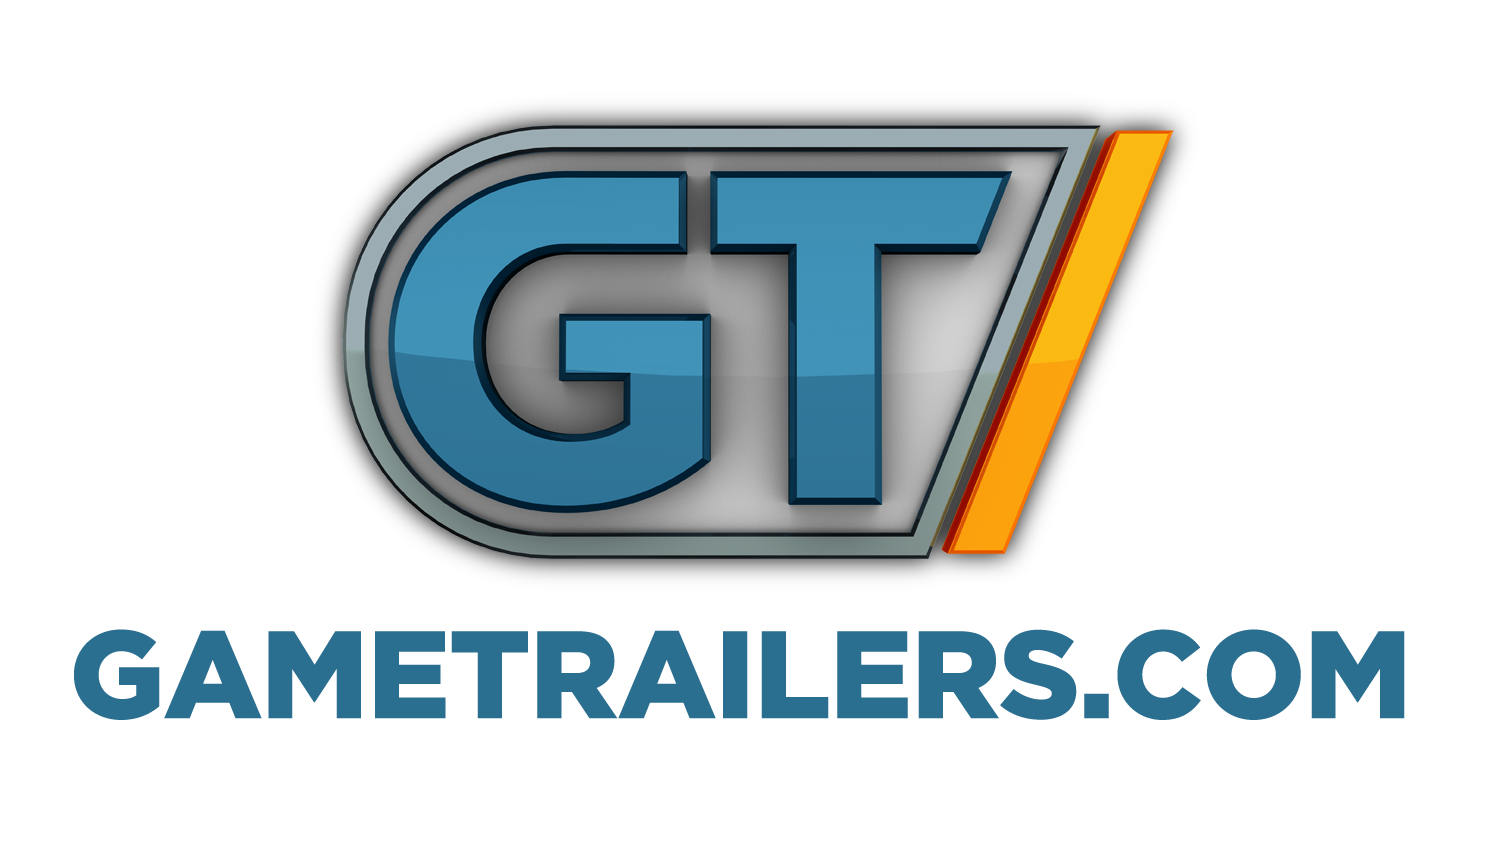 gt_logo_front_texty1jwt.png